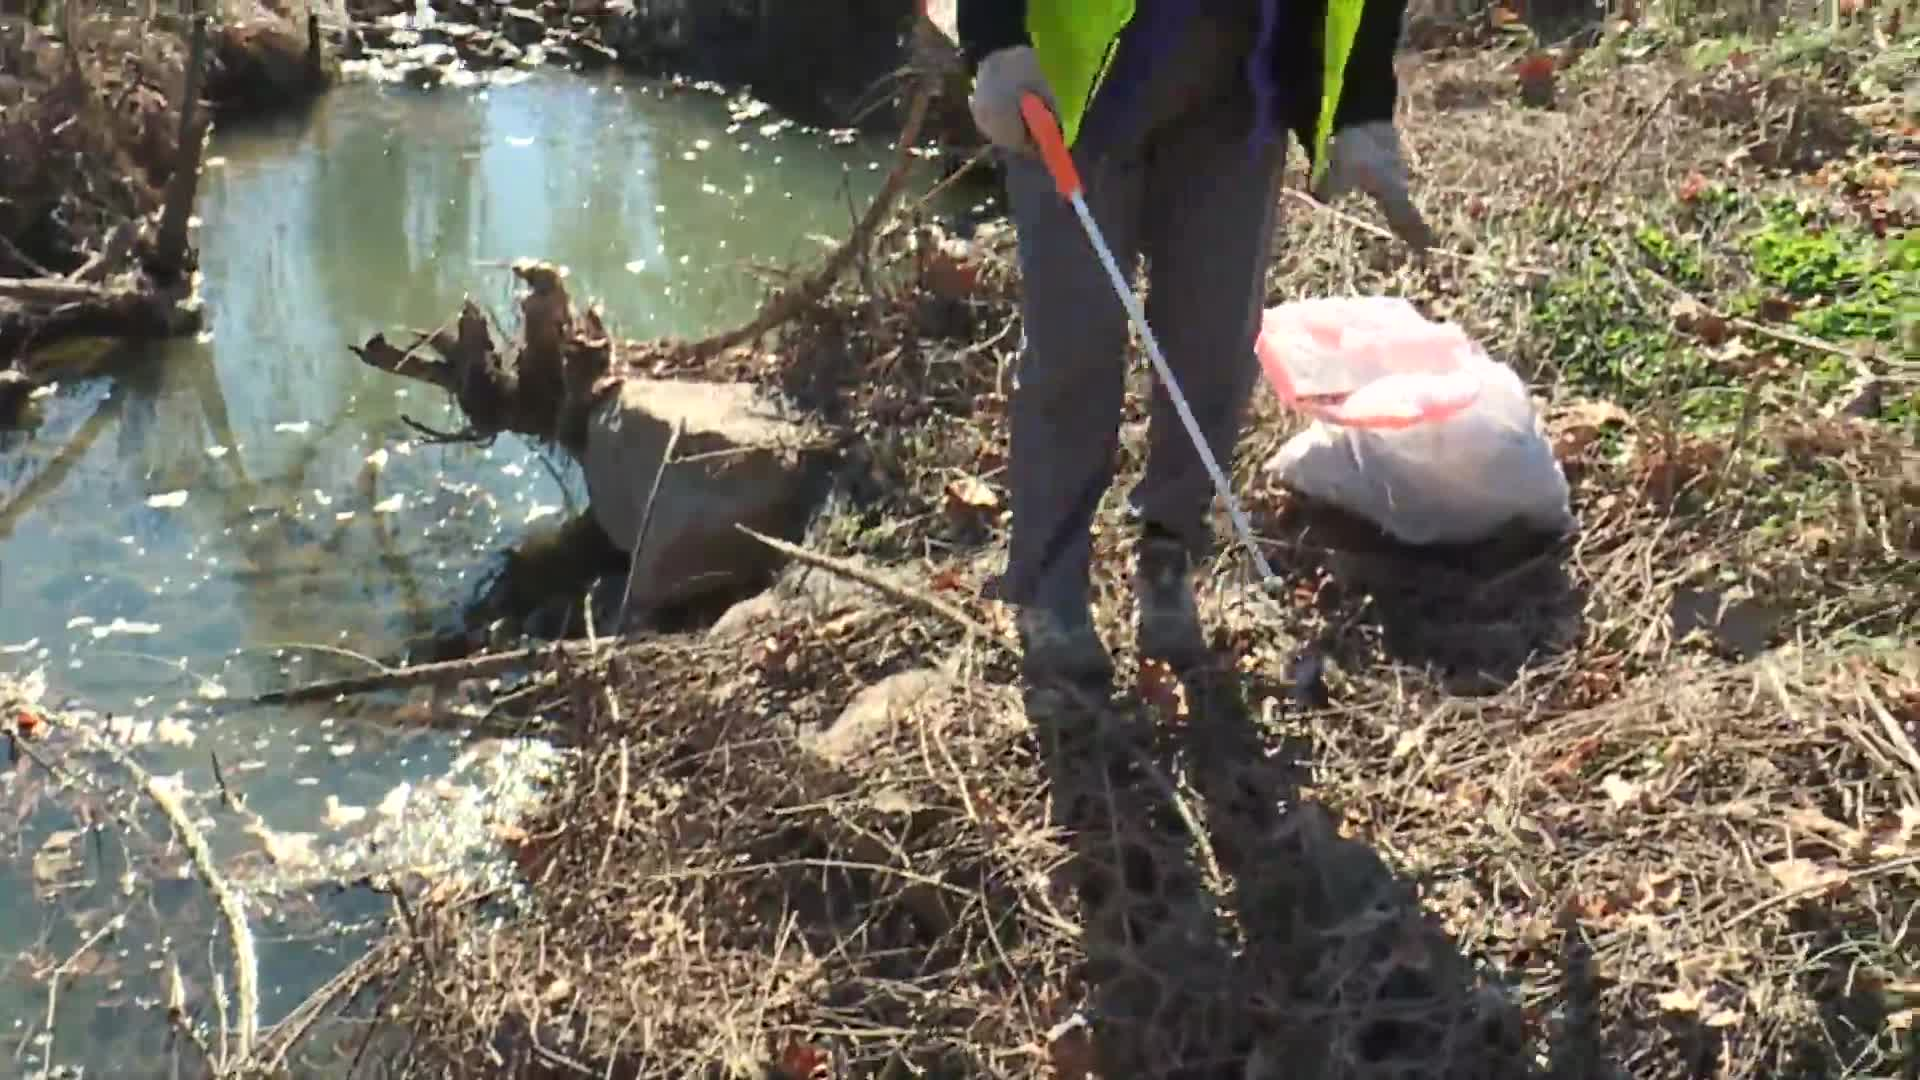 Greensboro group cleans up trash around the city